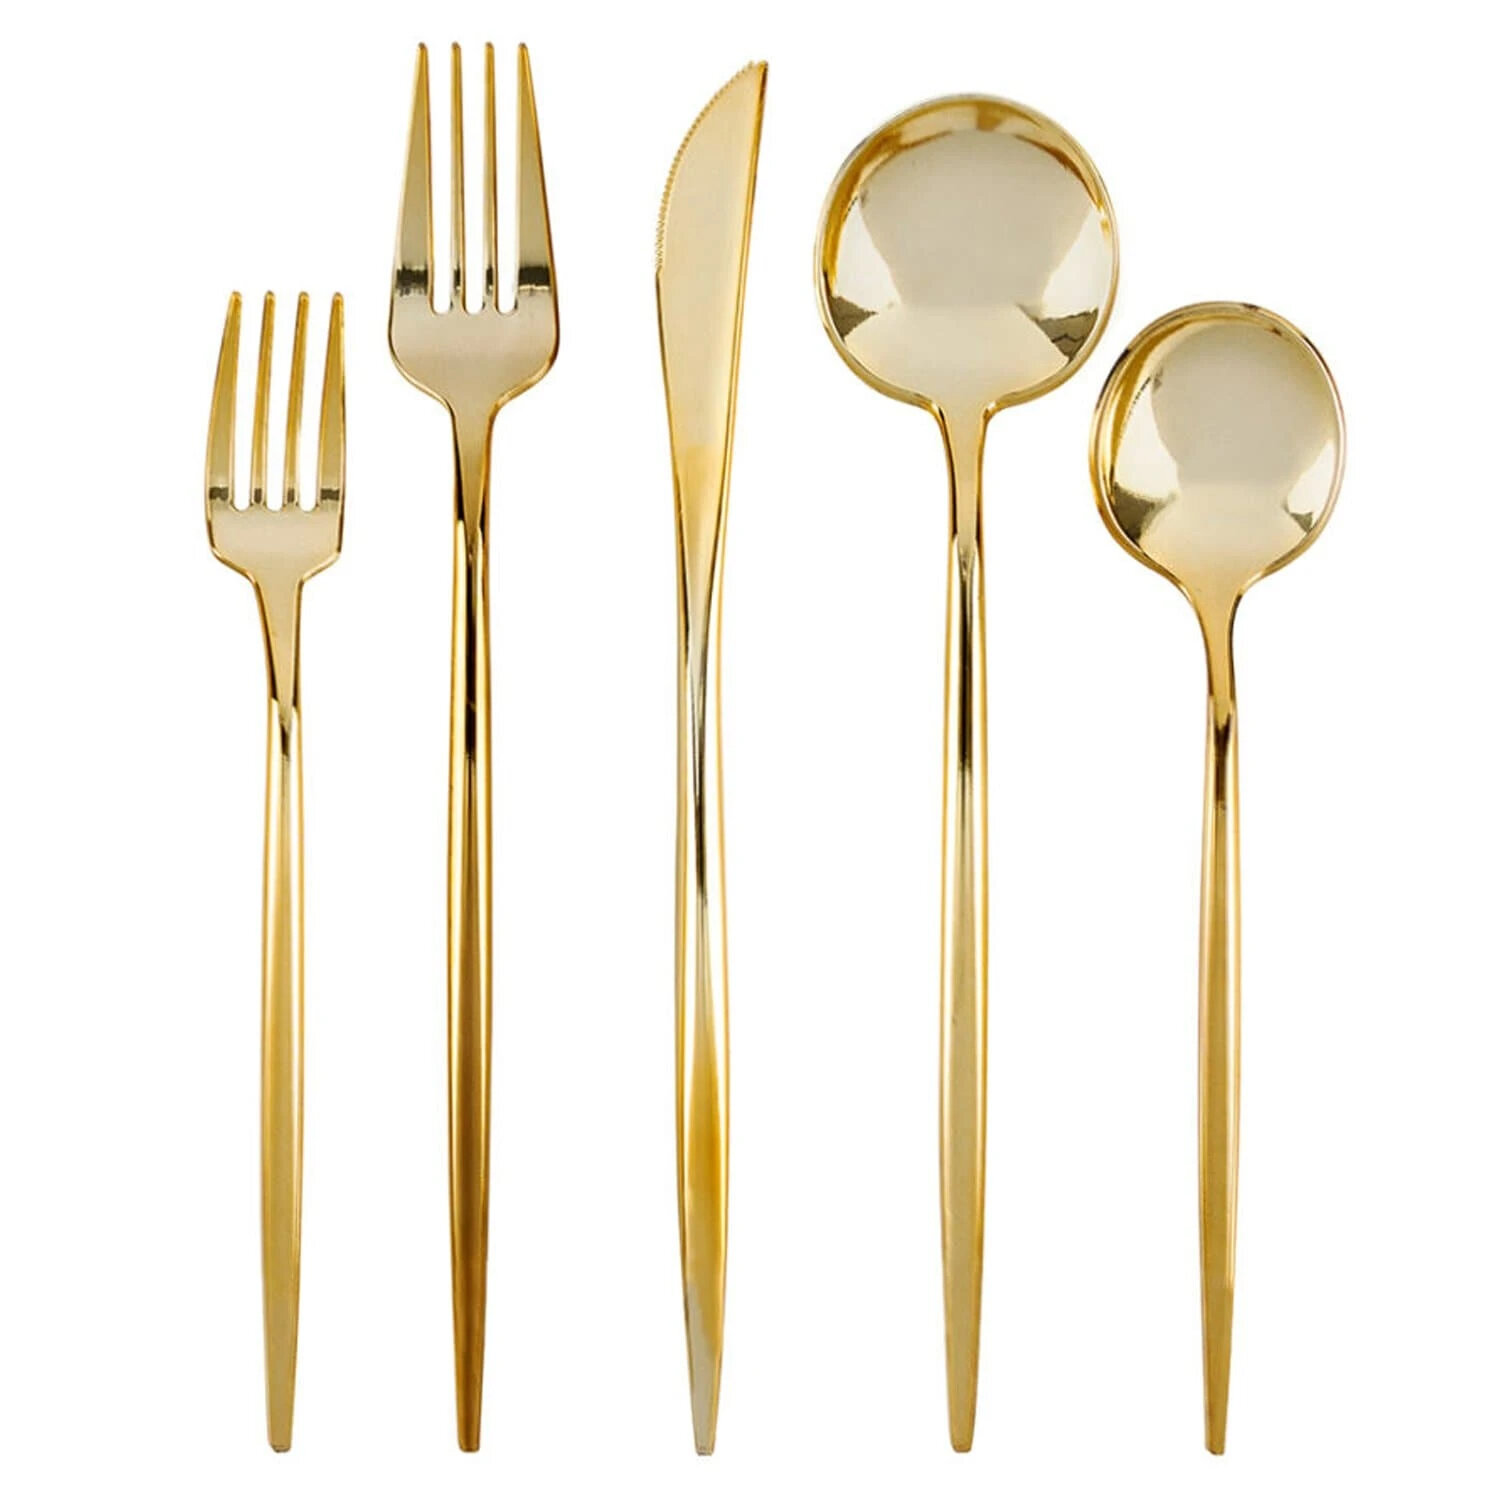 Gold Mercer41 Flatware Sets You Ll Love In 2021 Wayfair